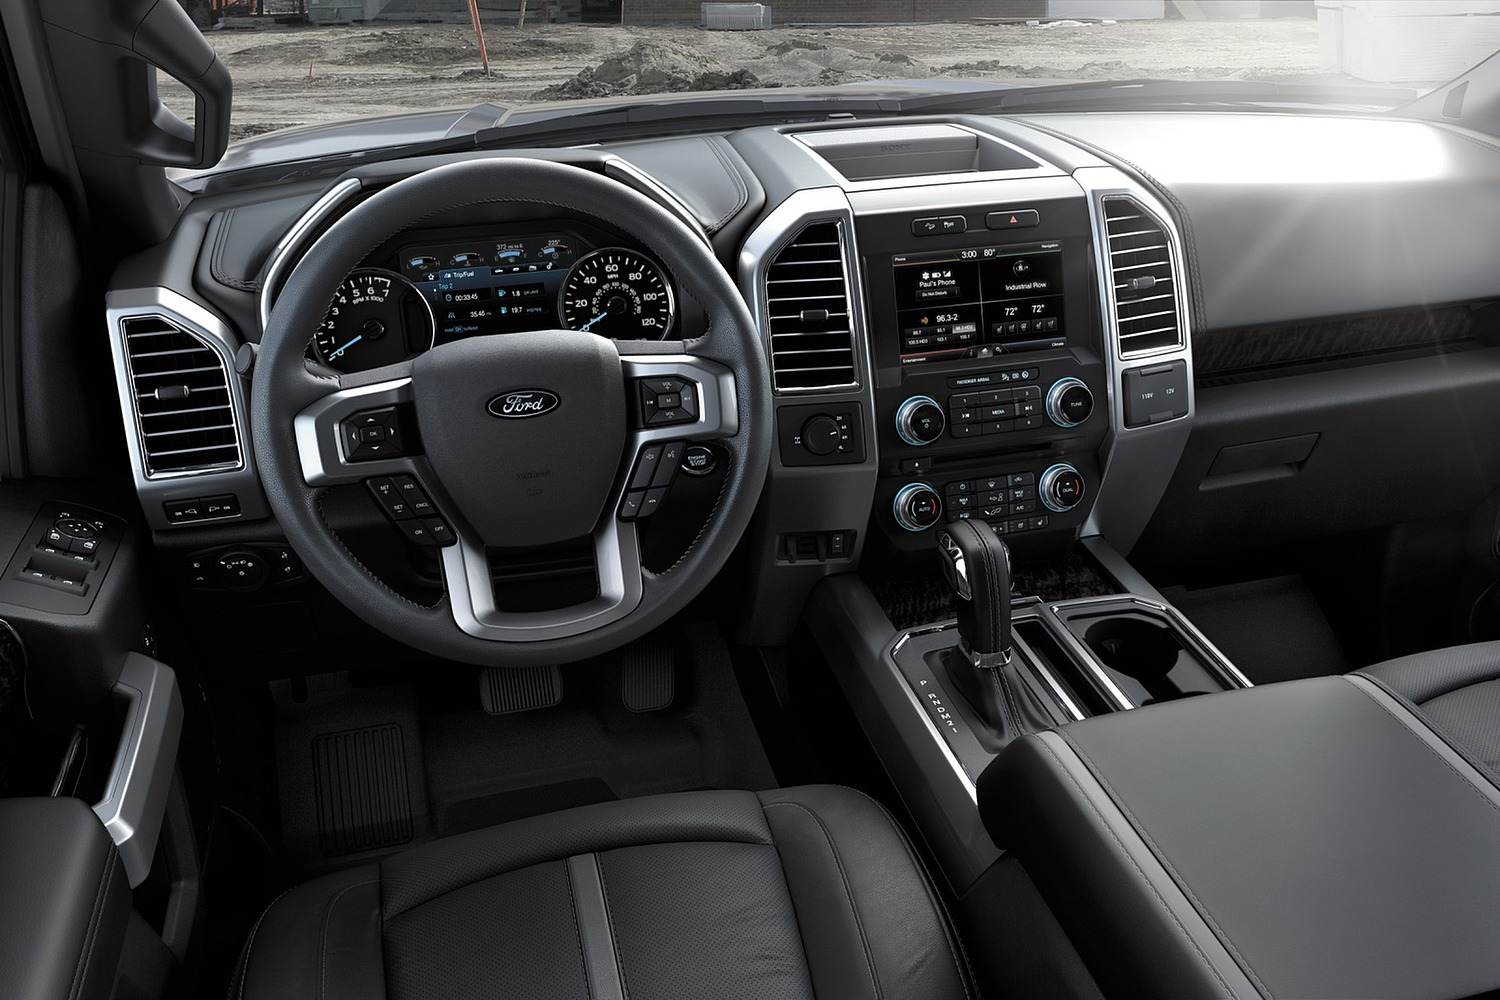 2015 Ford F-150 XLT Crew Cab Pickup Interior